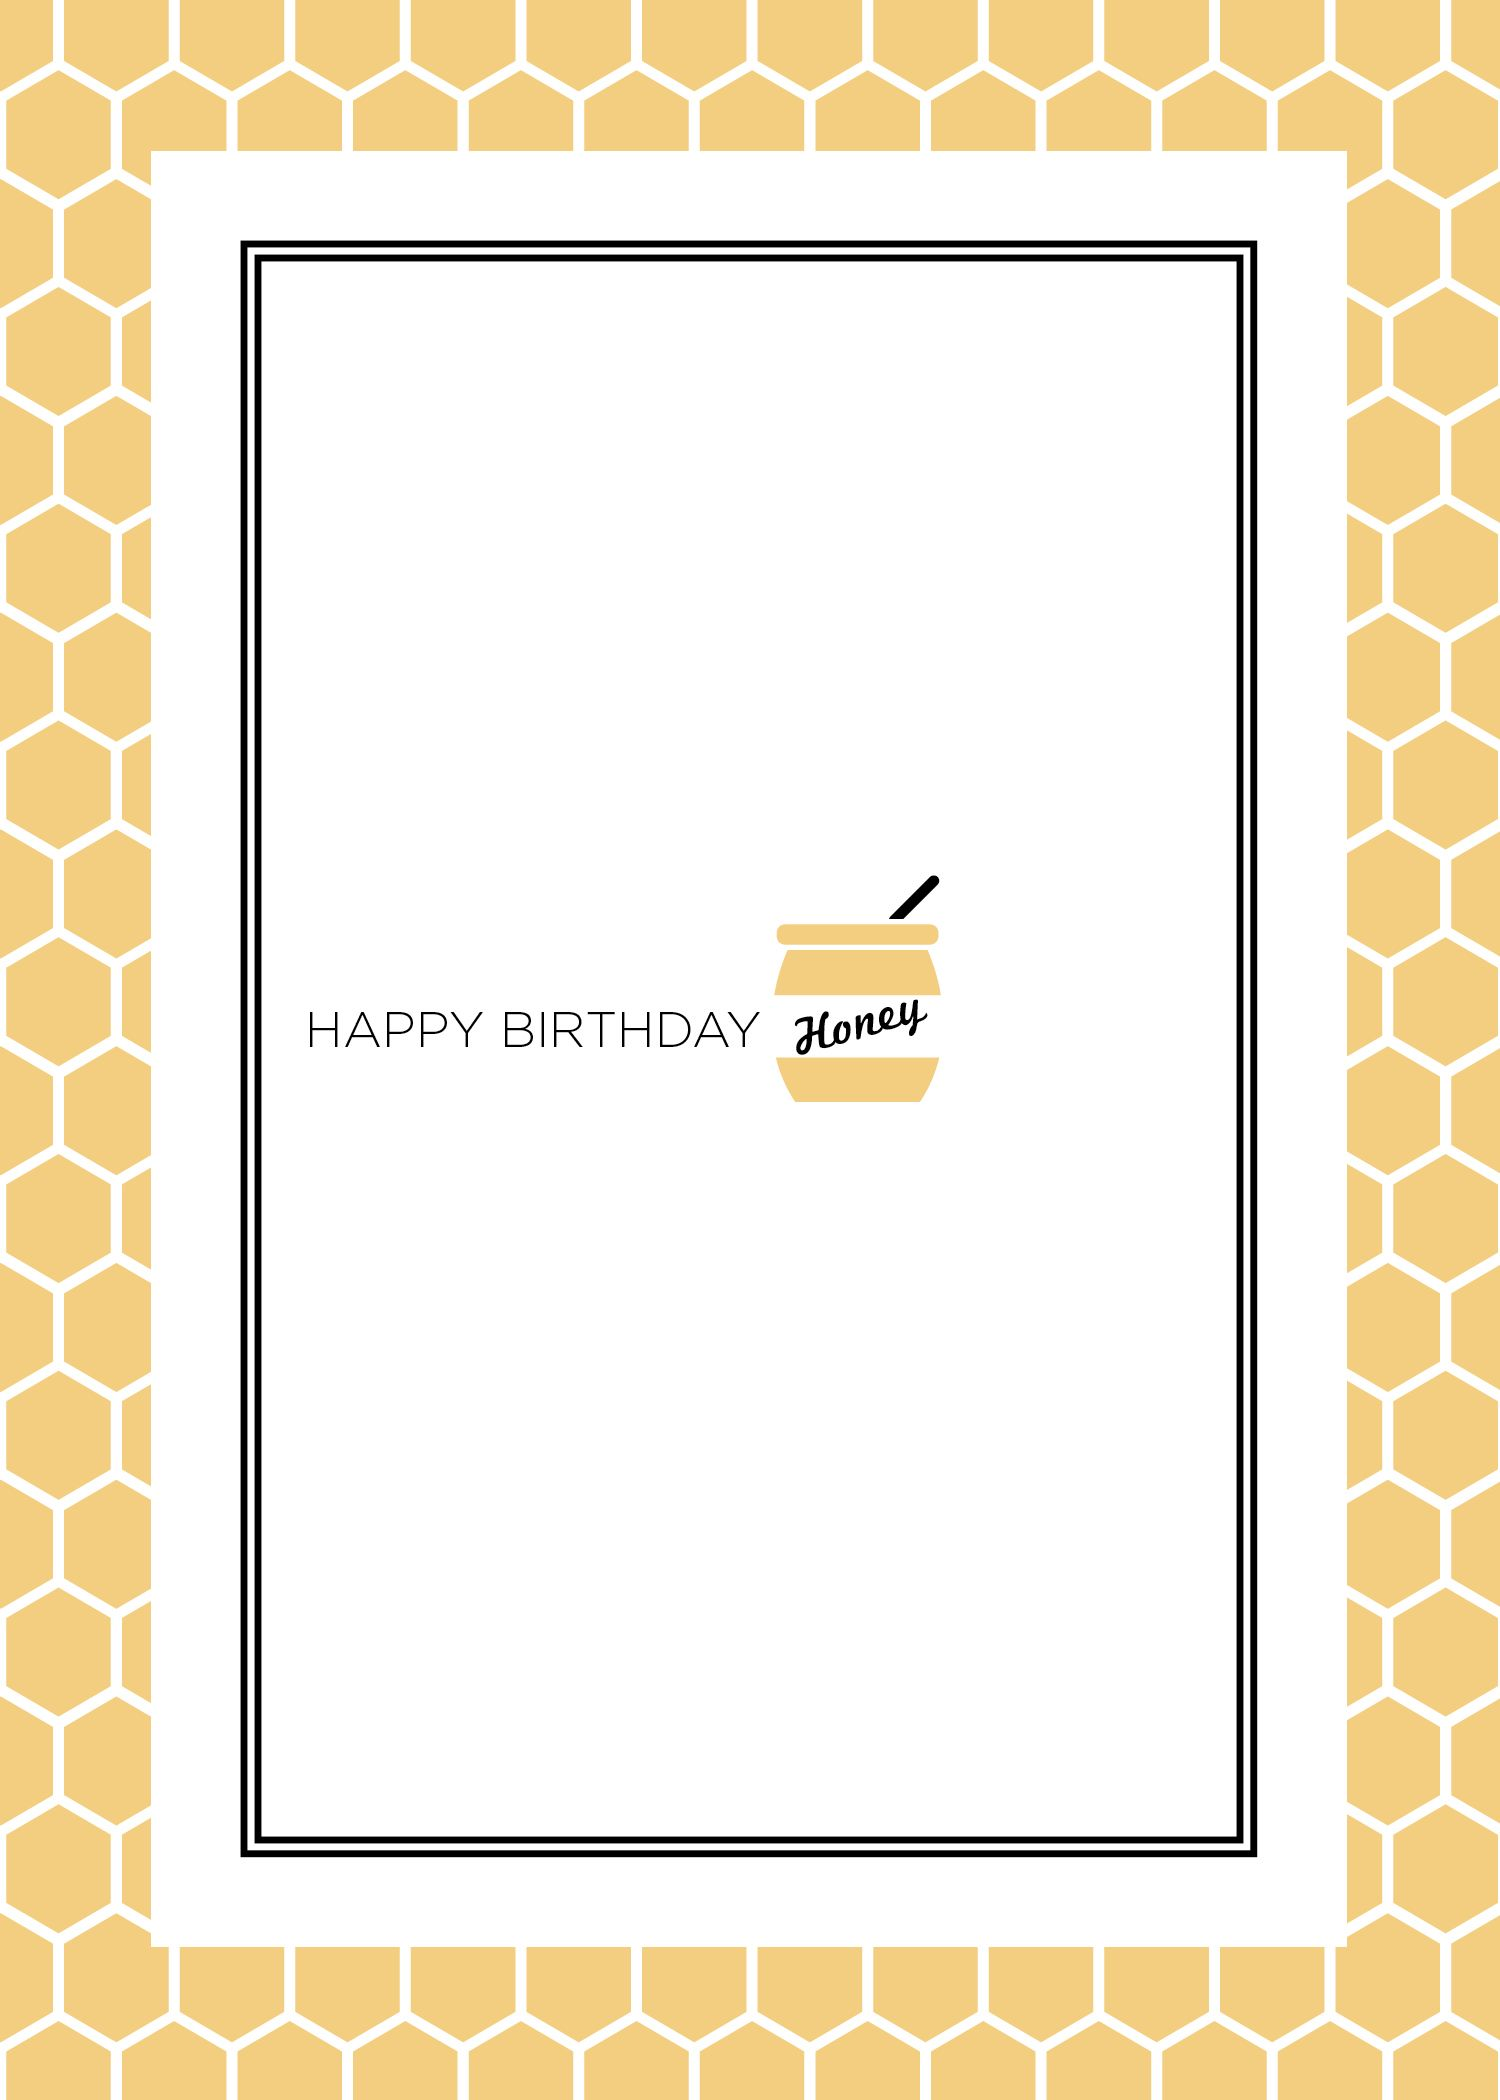 sweet happy birthday card for someone special. #greetingcard #birthdaycard #greetingcarddesign